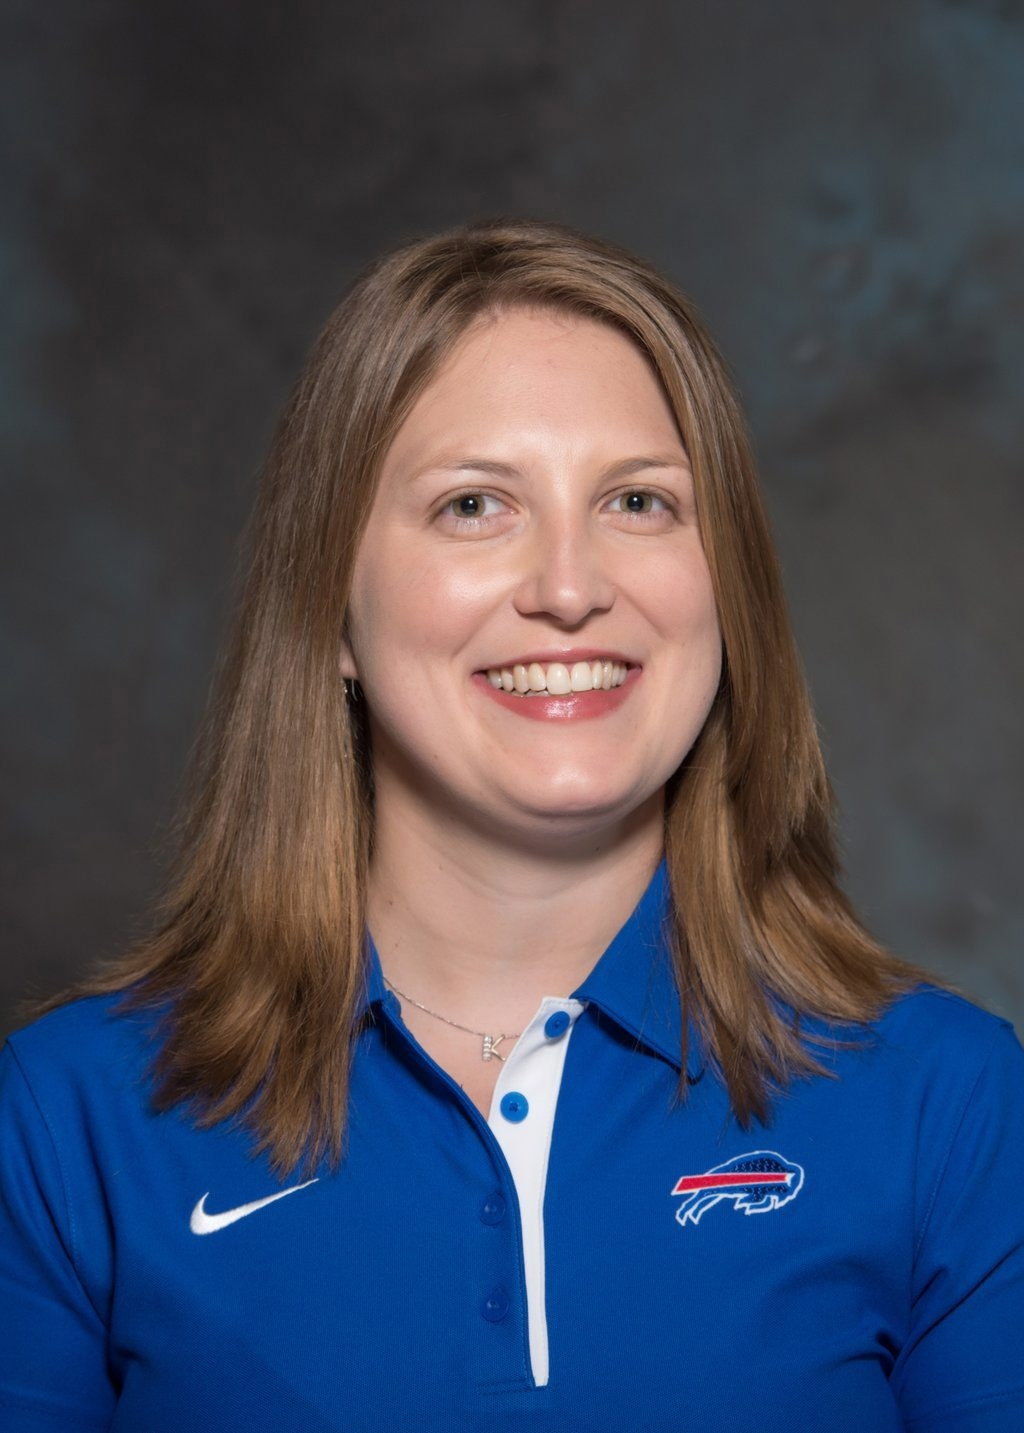 Kathryn Smith is NFL's first full-time female assistant.